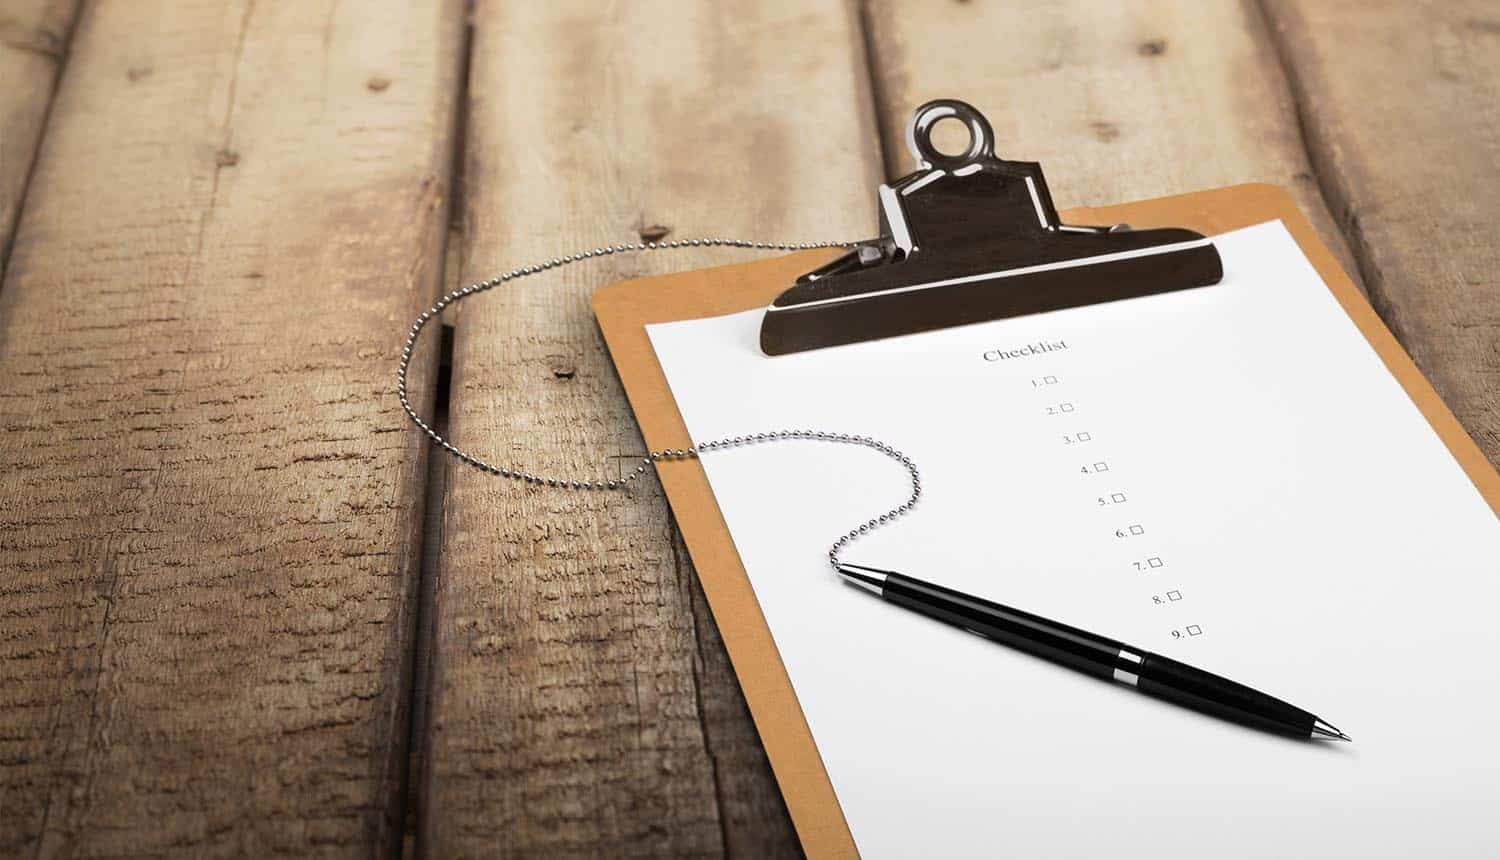 Image of checklist on a clipboard and pen representing the need to demonstrate compliance using an accountability approach